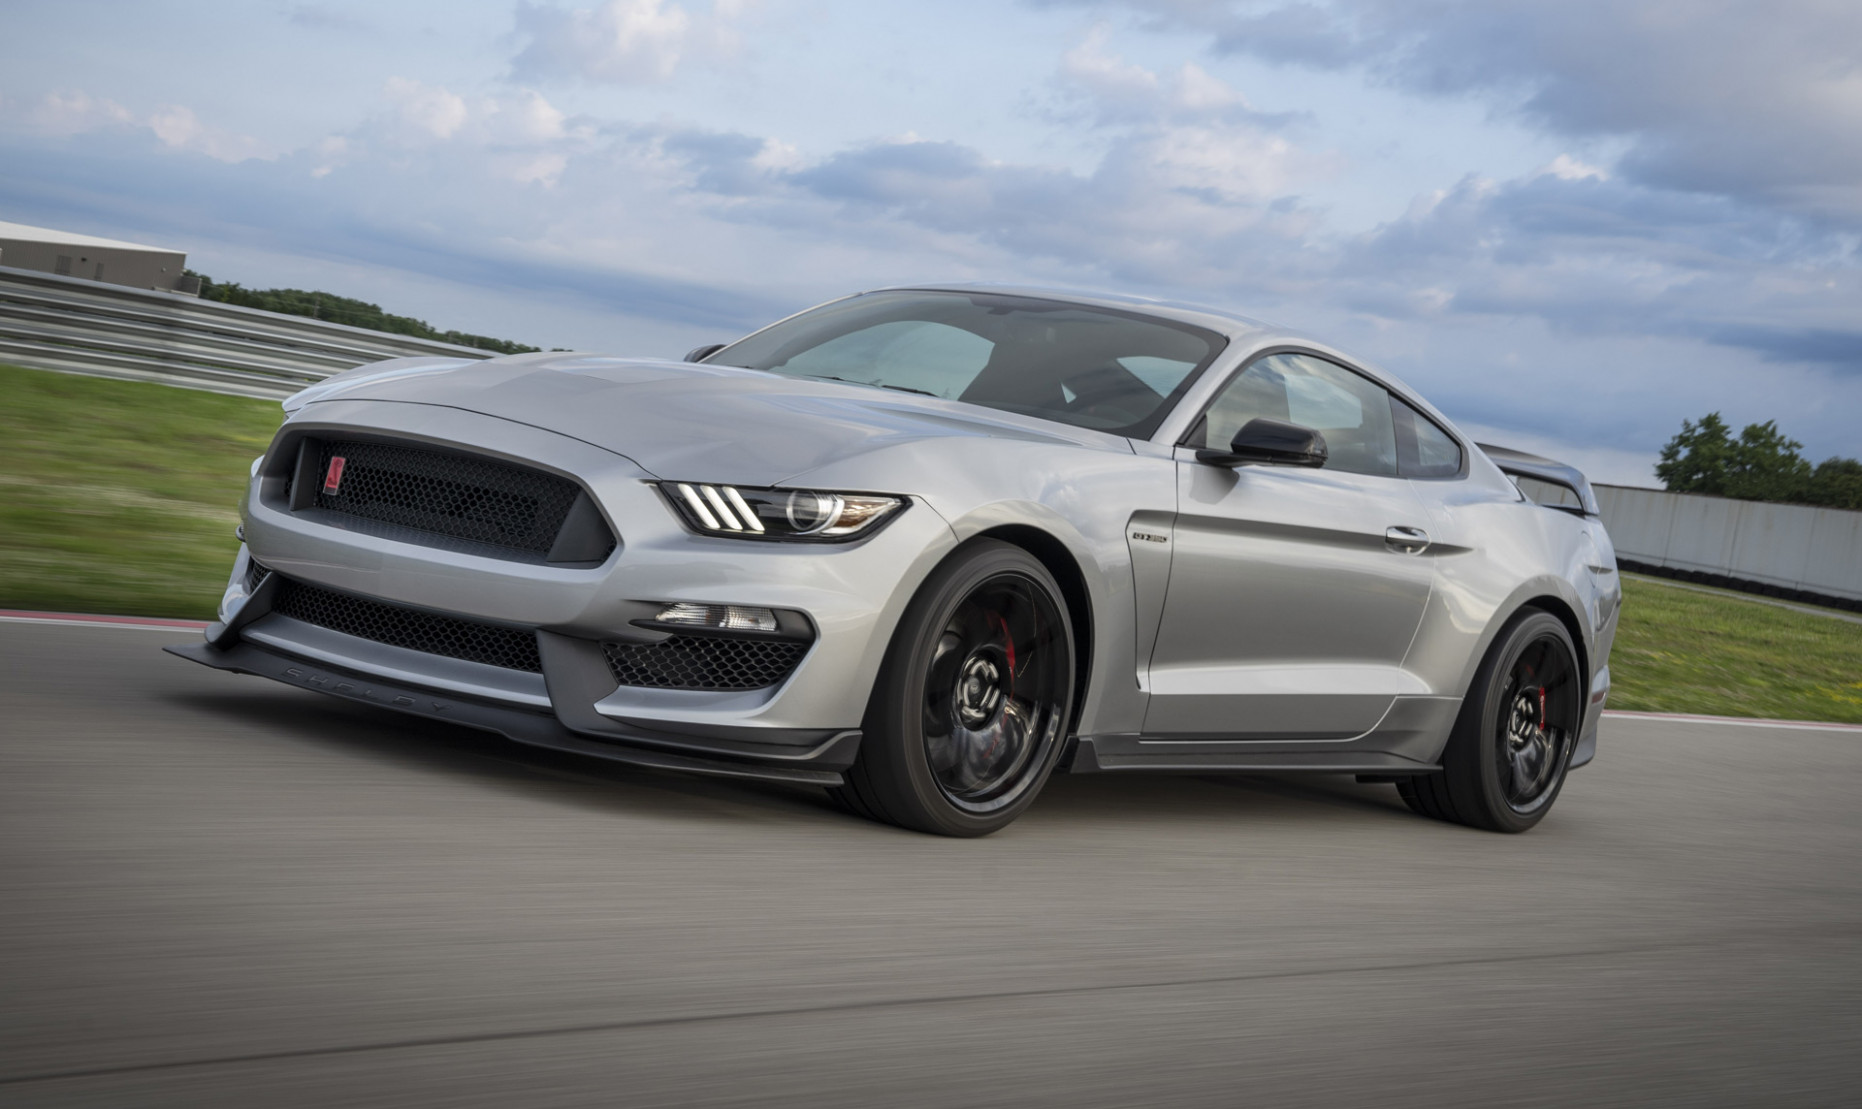 8 Ford Mustang Shelby GT8R gets Shelby GT8 goodies - 2020 ford mustang shelby gt350